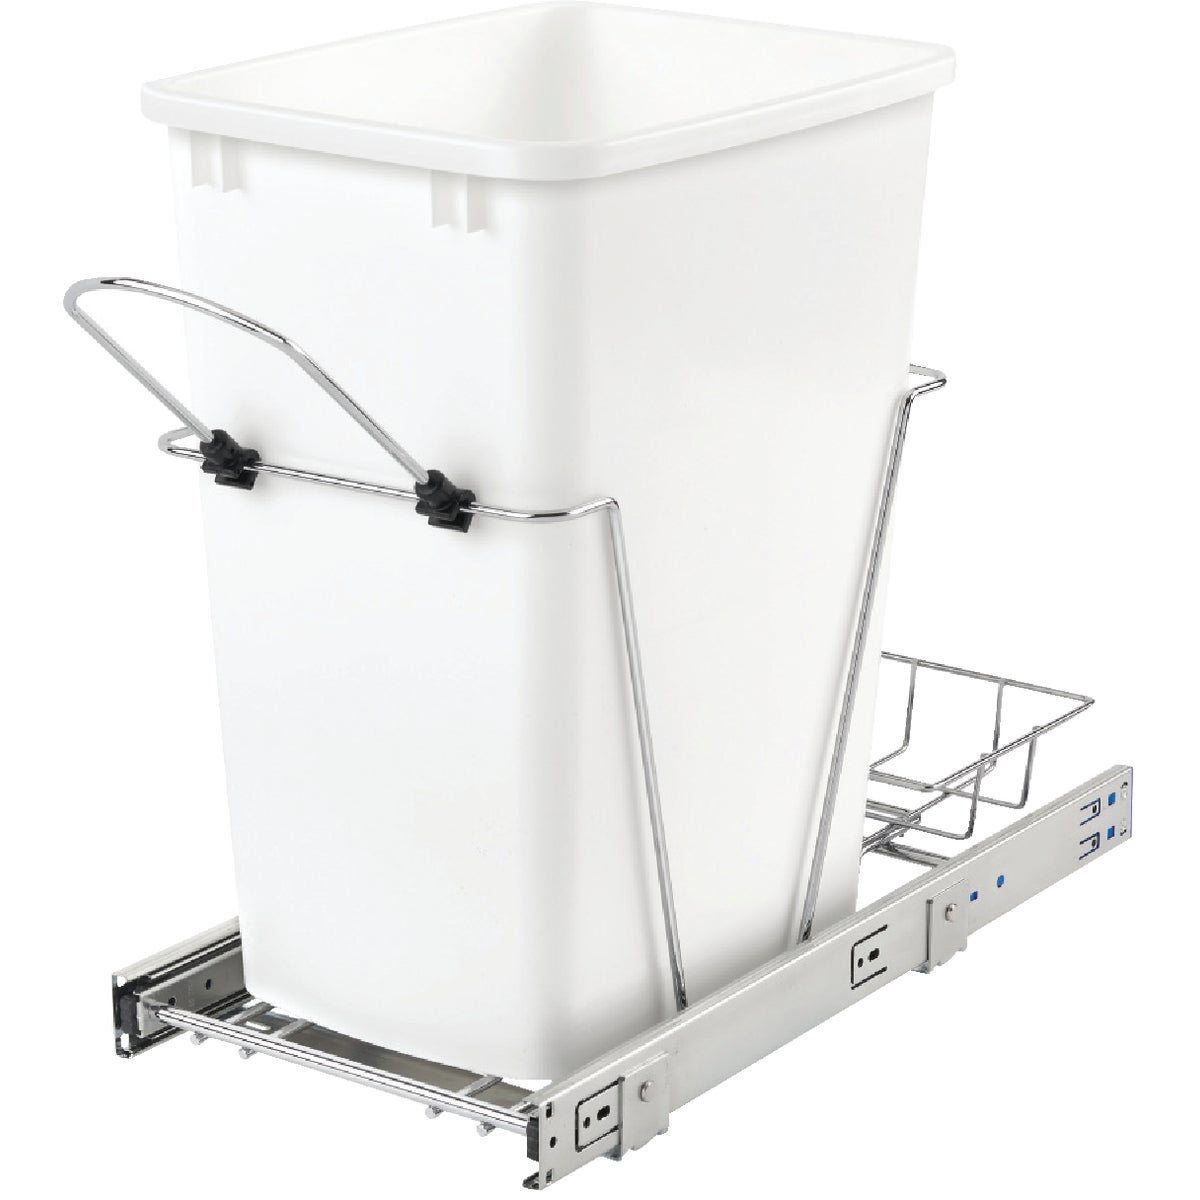 35QT WASTE CONTAINER - RV-12PBC-17RB-5 by Rev A Shelf